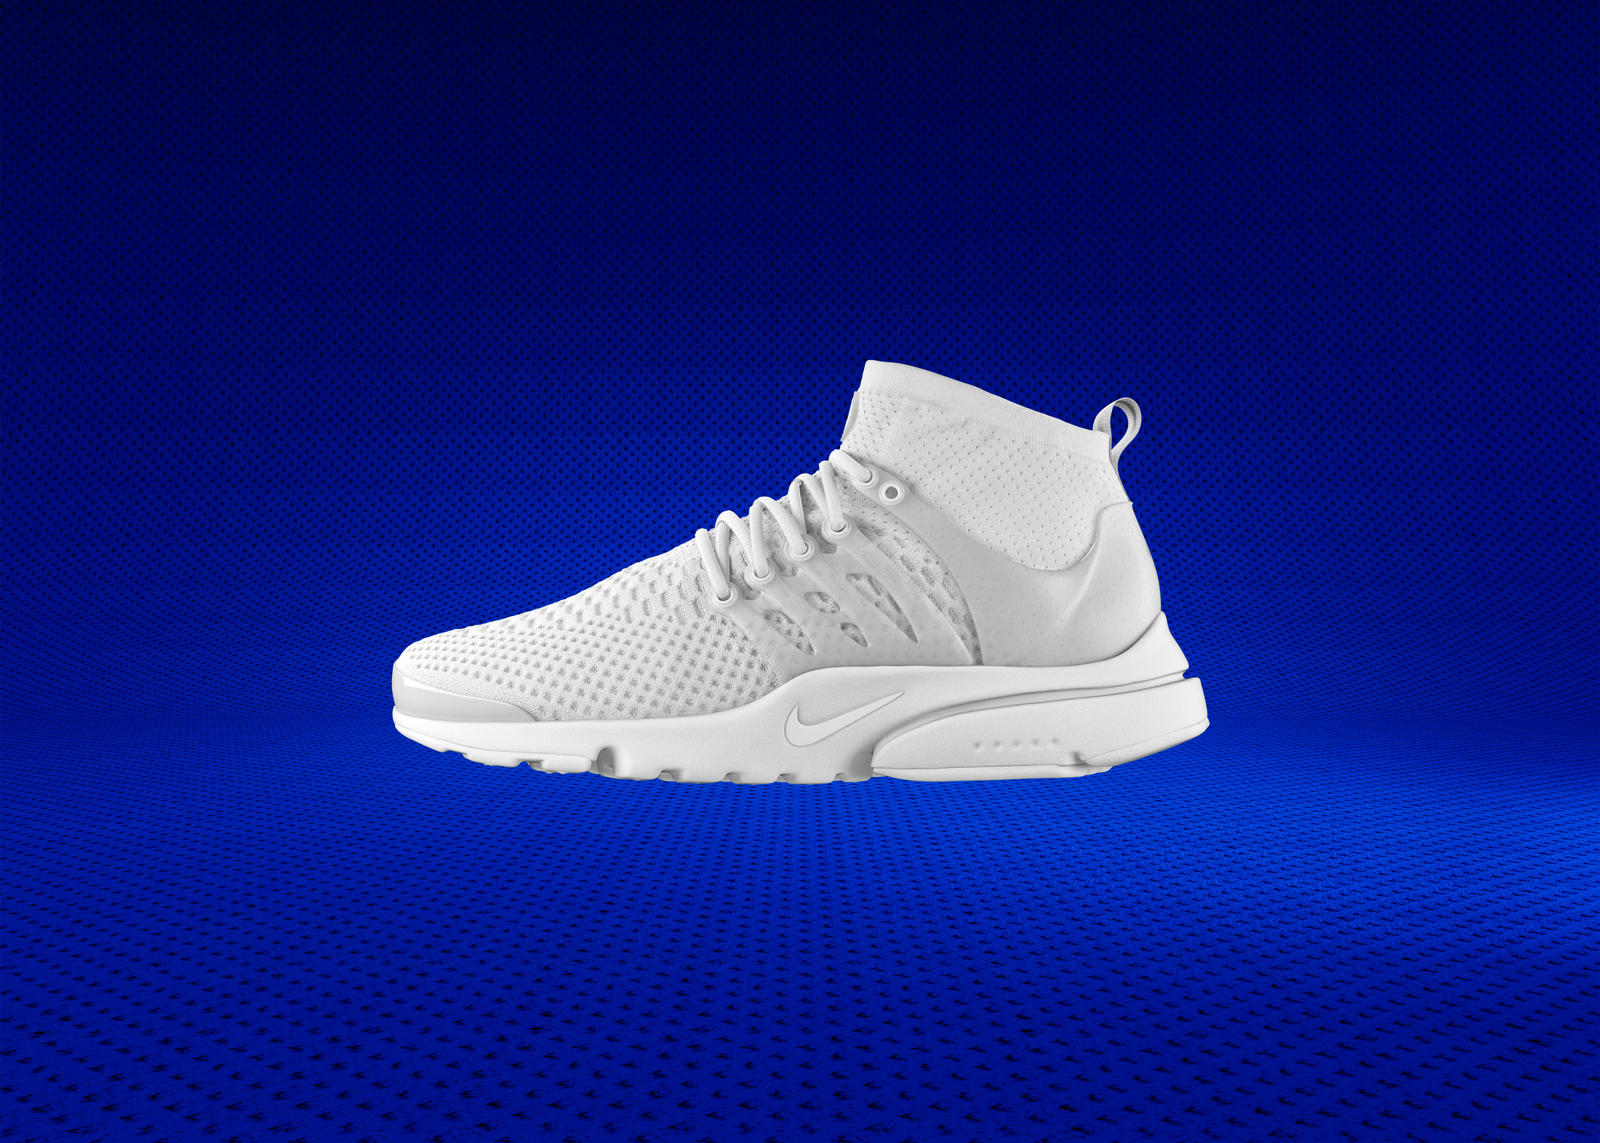 new concept 4b159 f8f17 Get Comfortable in the Nike Air Presto Ultra Flyknit in 11 Colorways ...